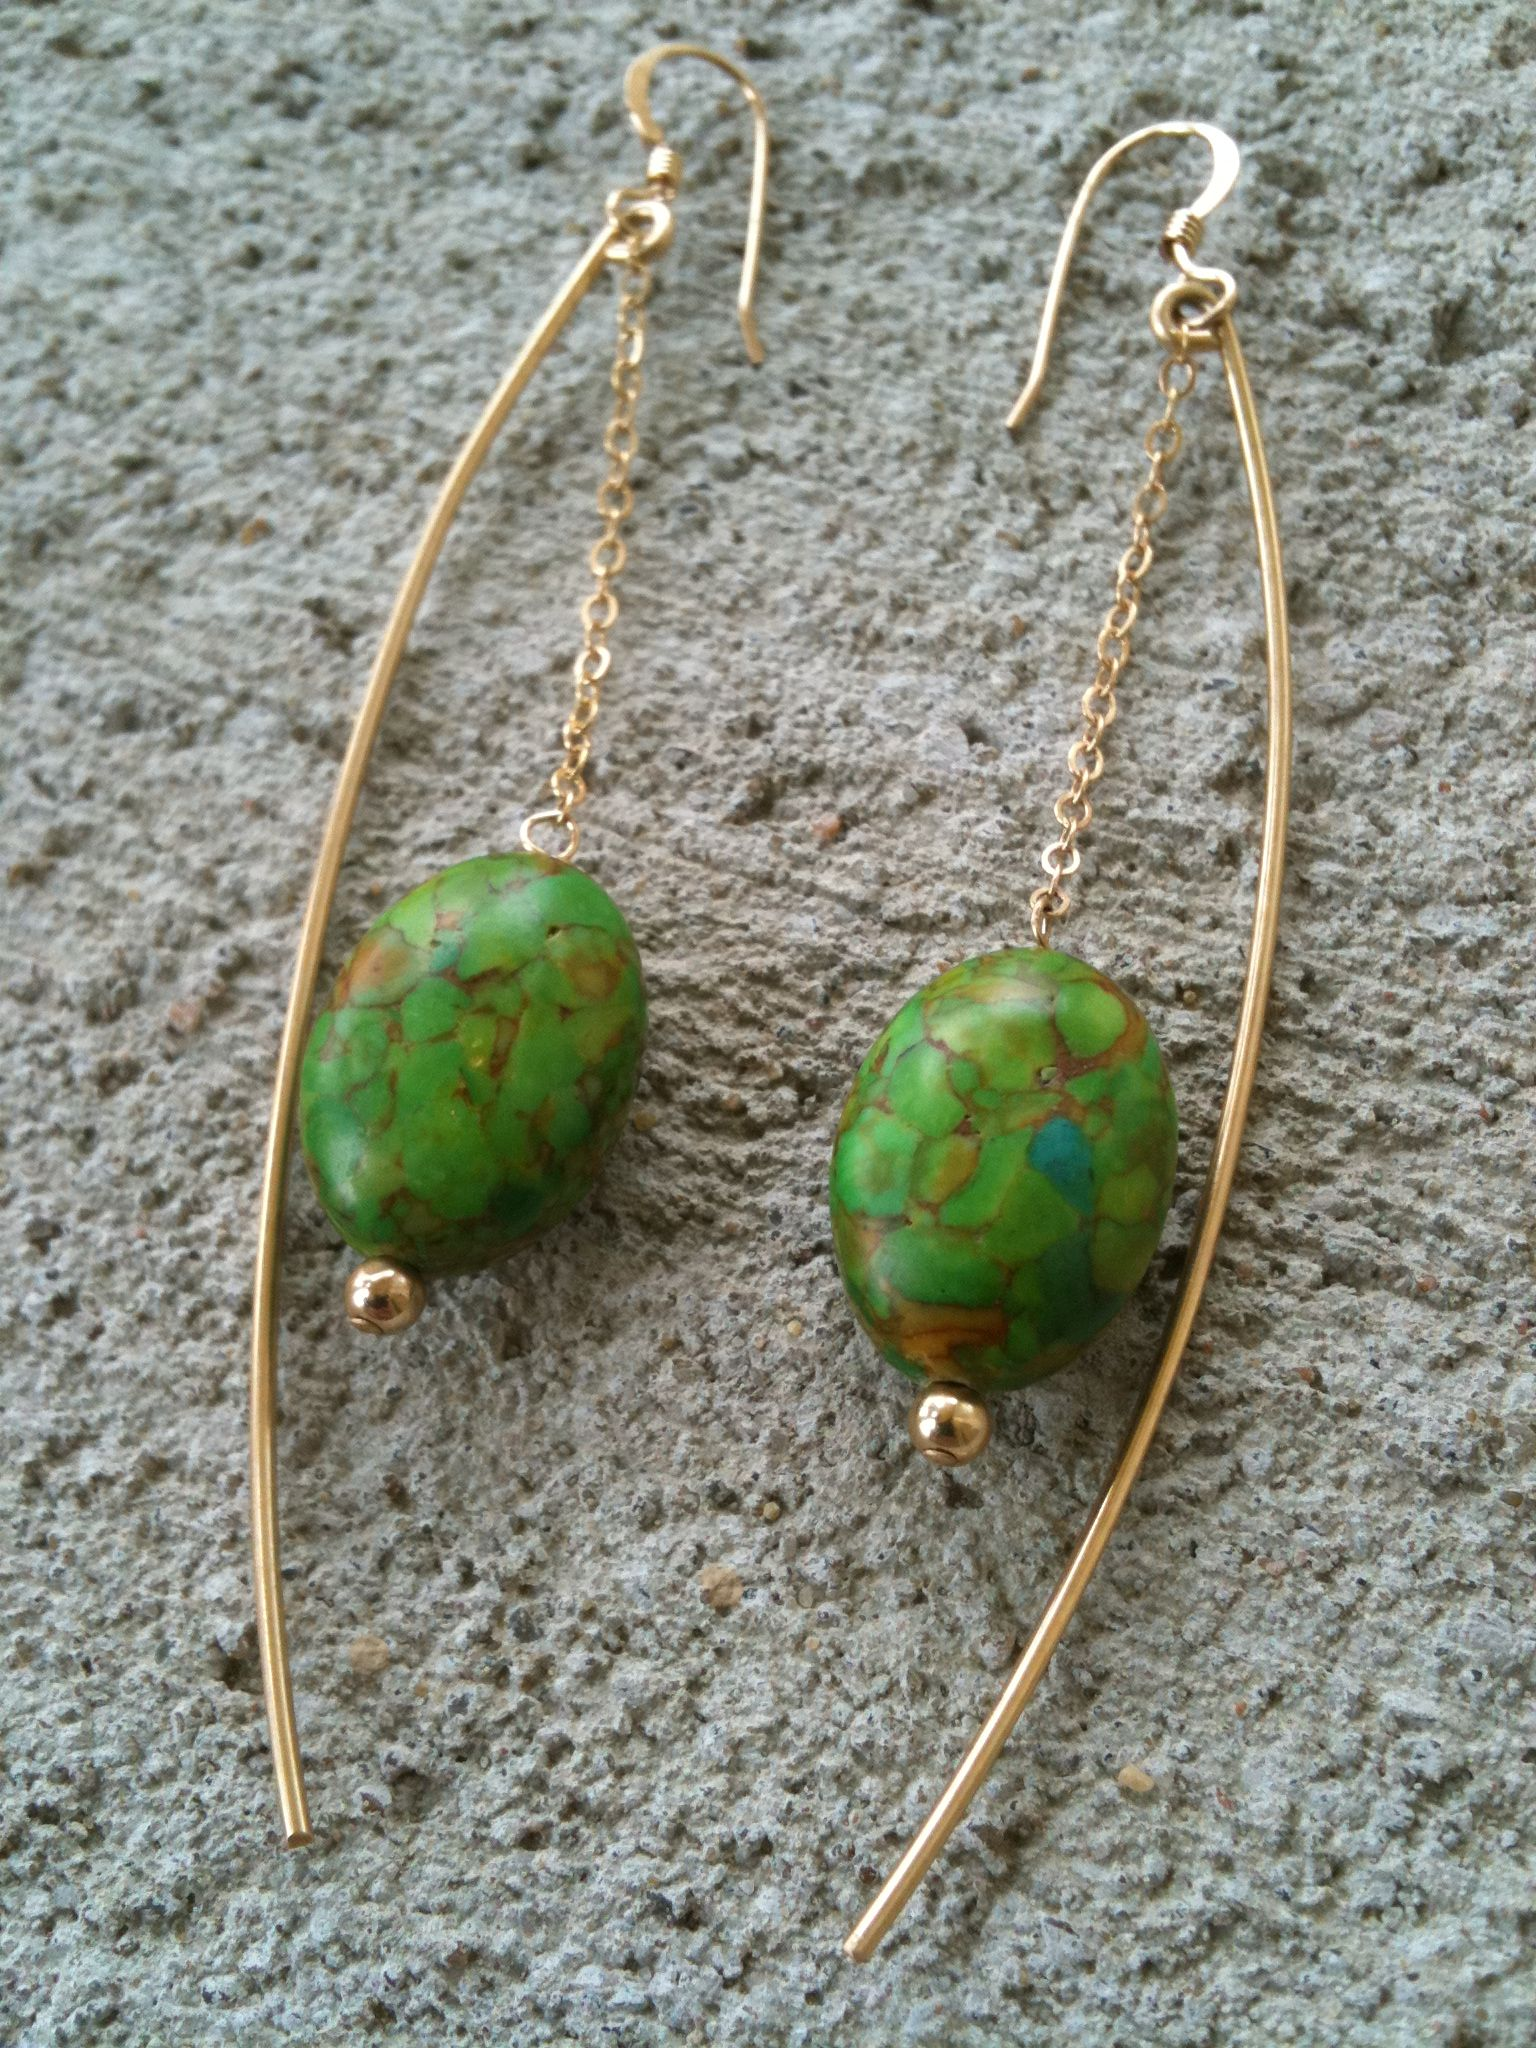 Gold Wire and Chain with Green Bead Accent by Erin Paige Designs (local to KC)